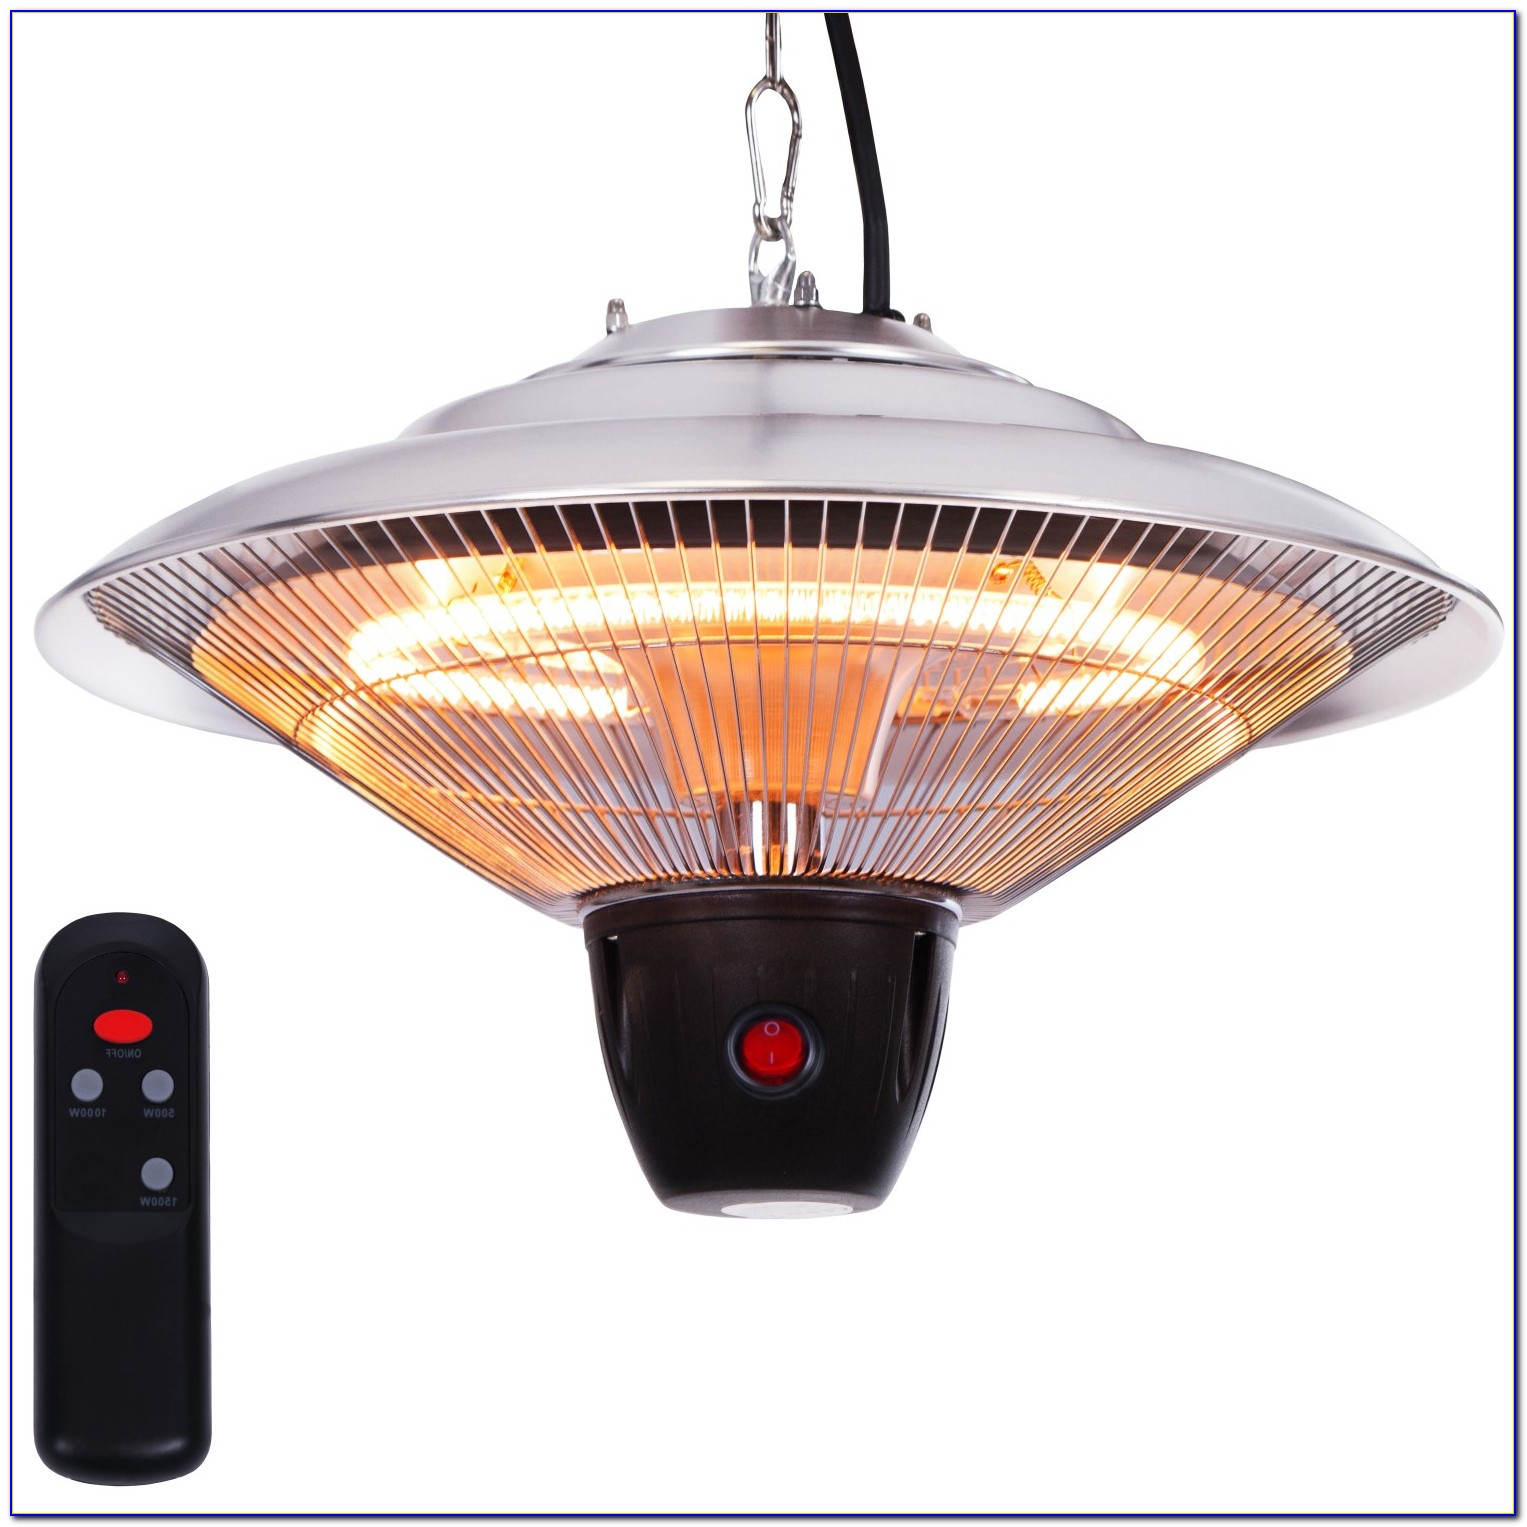 Outdoor Ceiling Mounted Electric Heaters